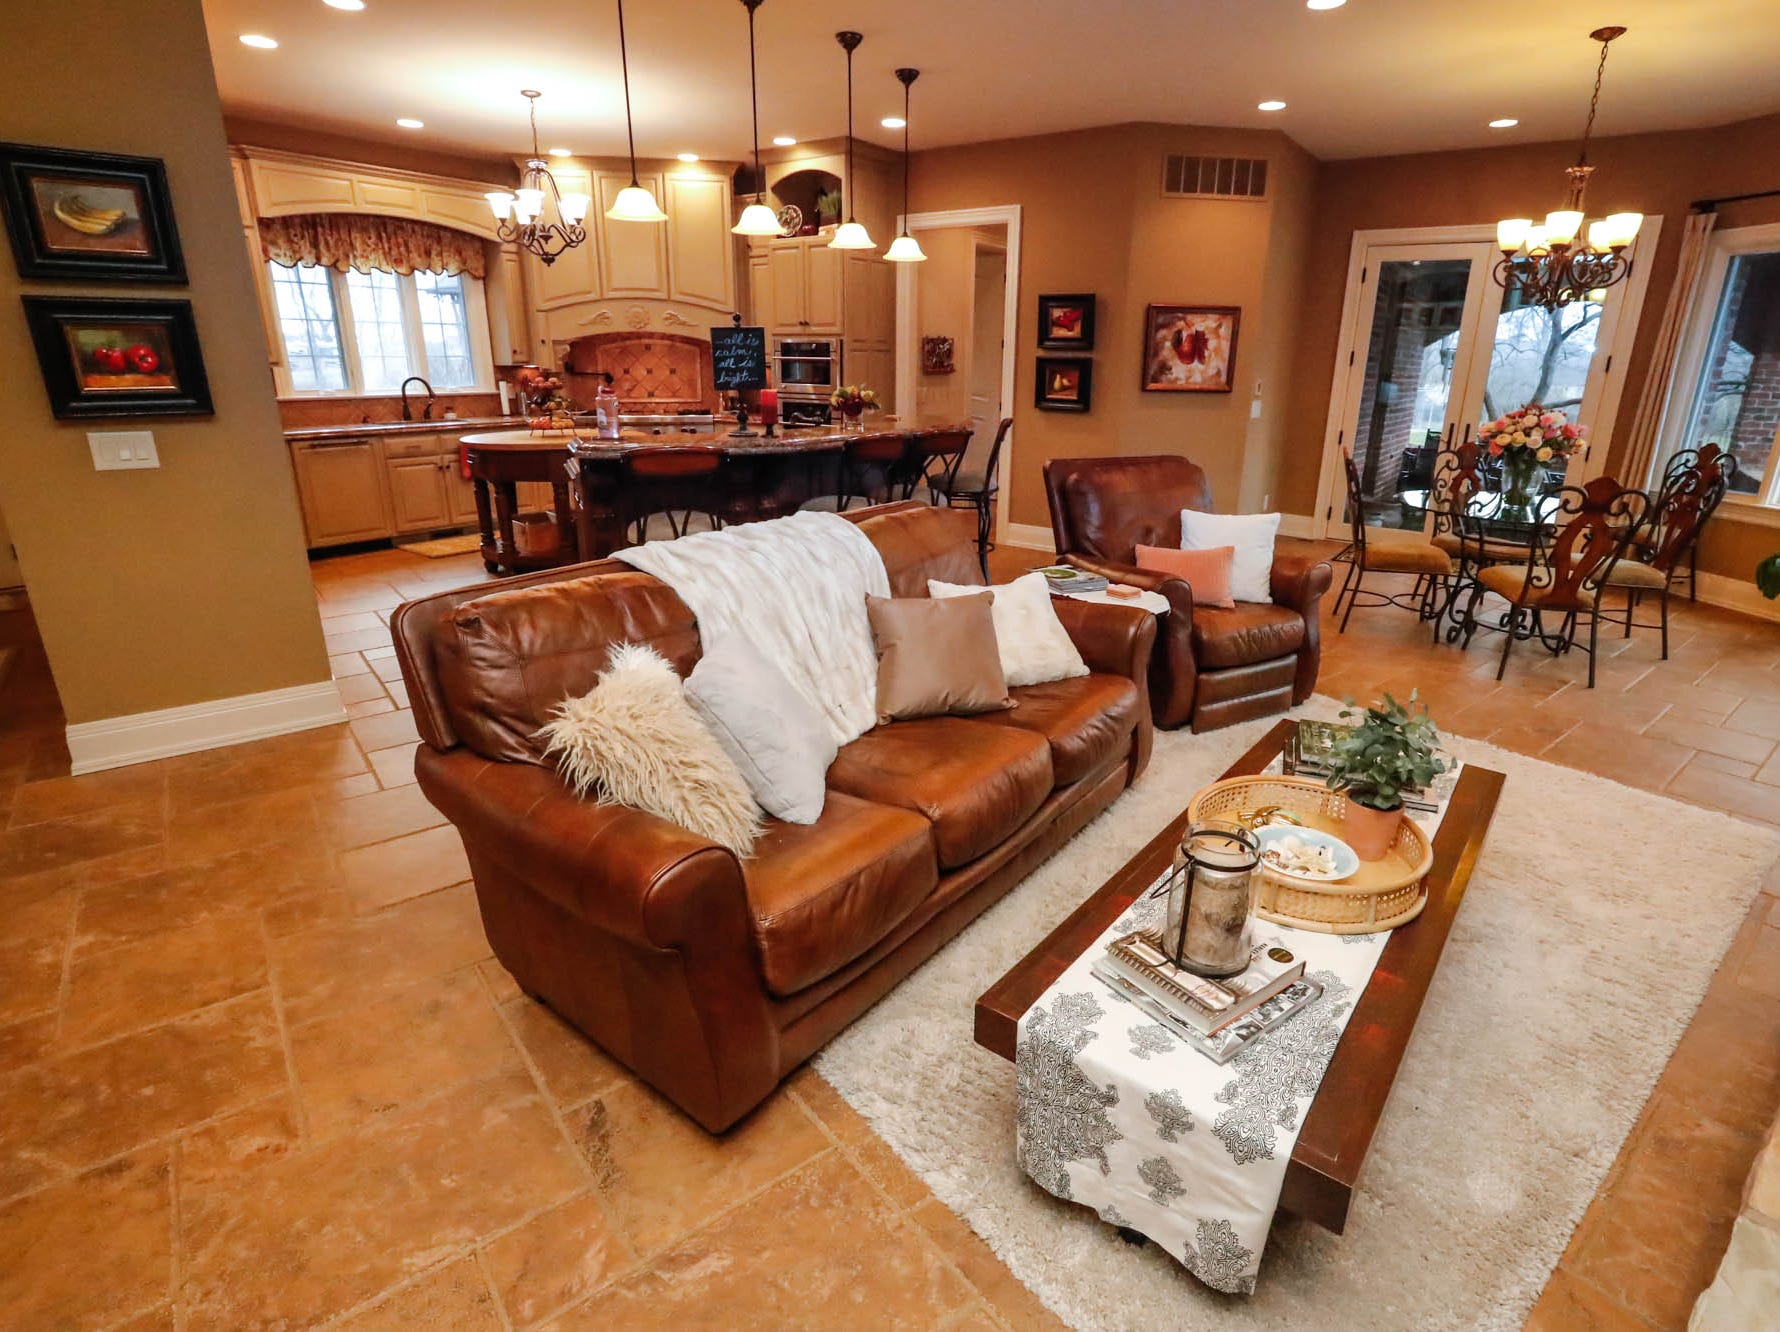 The kitchen and living room feature an open floor plan in a traditional $2m home with elements of French country and Tuscan influence up for sale in Bargersville Ind. on Wednesday, Jan. 9, 2019. The house sits on 8.1 acres.